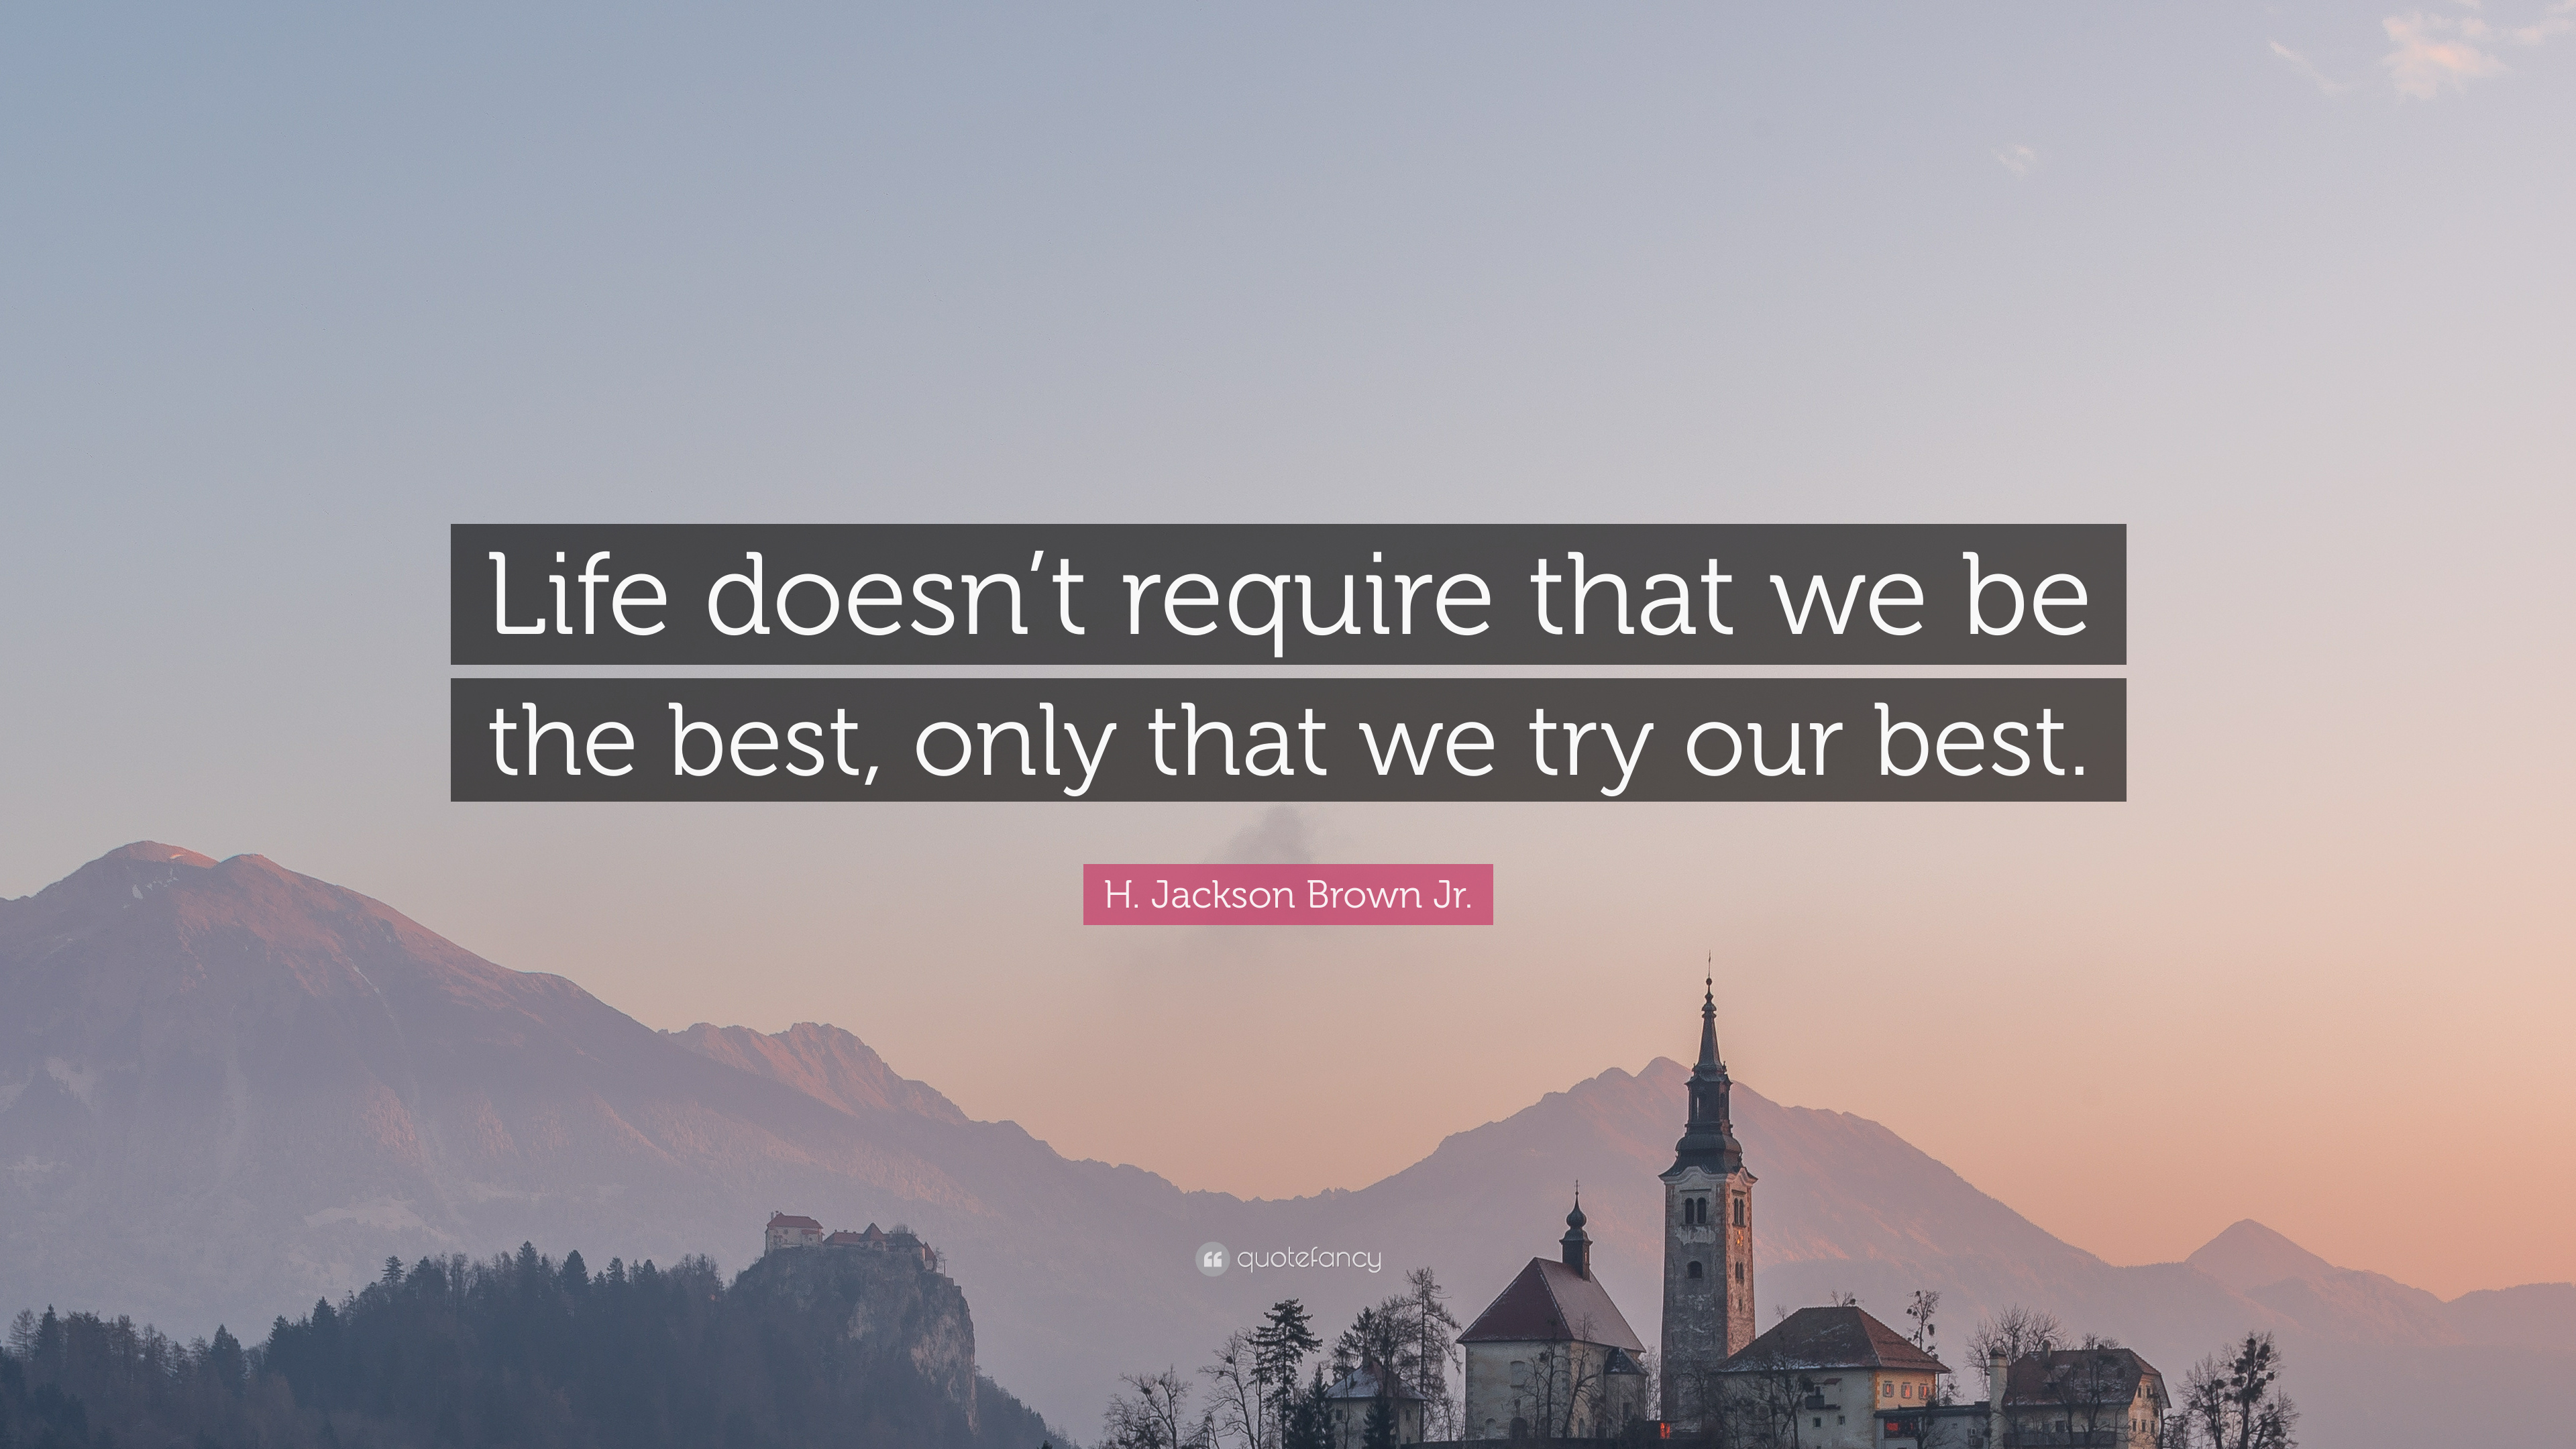 Life doesn't require that we be the best, only that we try our best – H. Jackson Brown Jr. [1200×625]